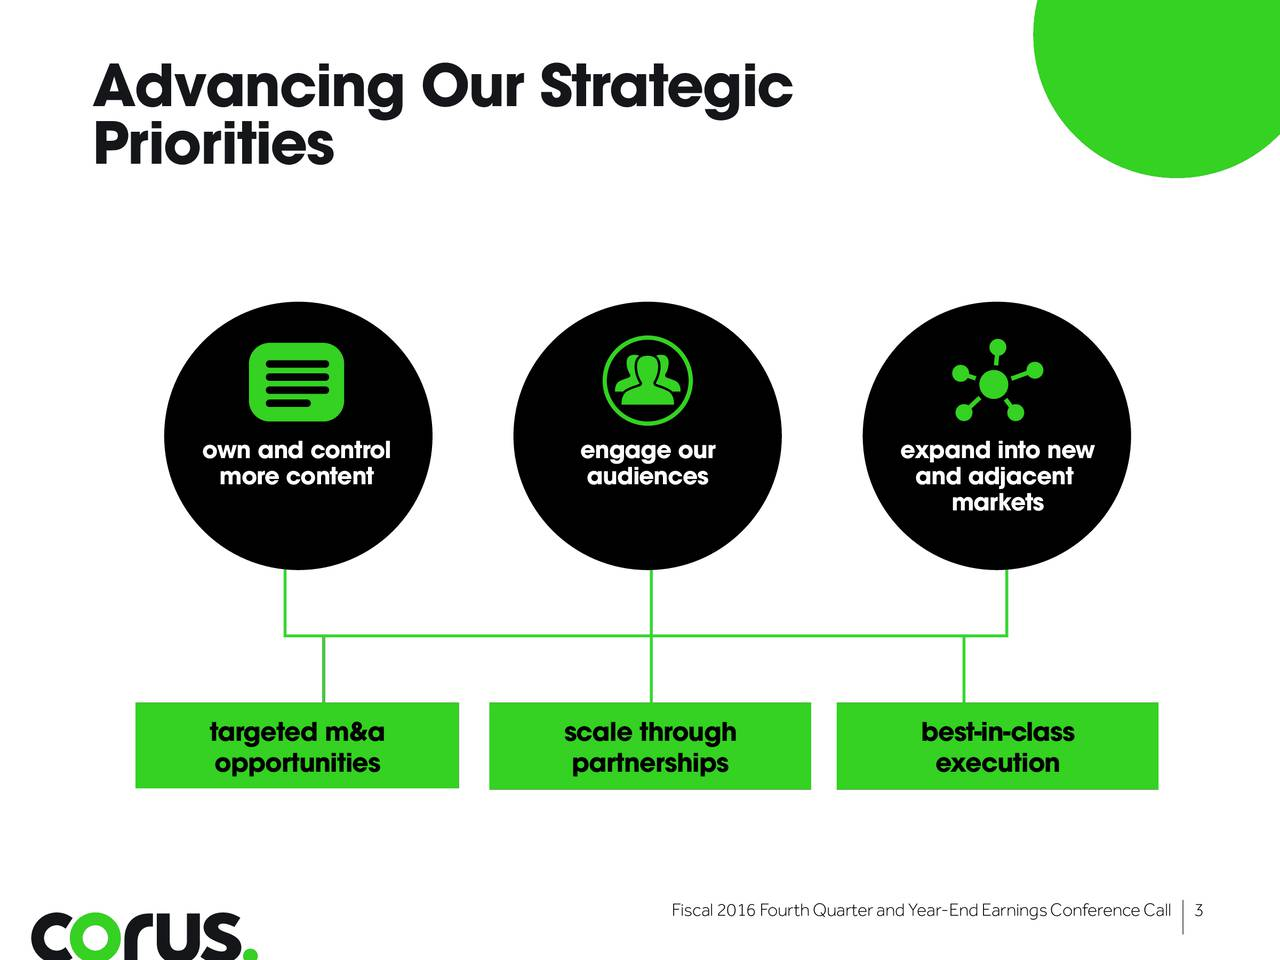 Priorities own and control engage our expand into new more content audiences and adjacent markets targeted m&a scale through best-in-class opportunities partnerships execution Fiscal2016FourthQuarterandYear-EndEar3ingsConferenceCall